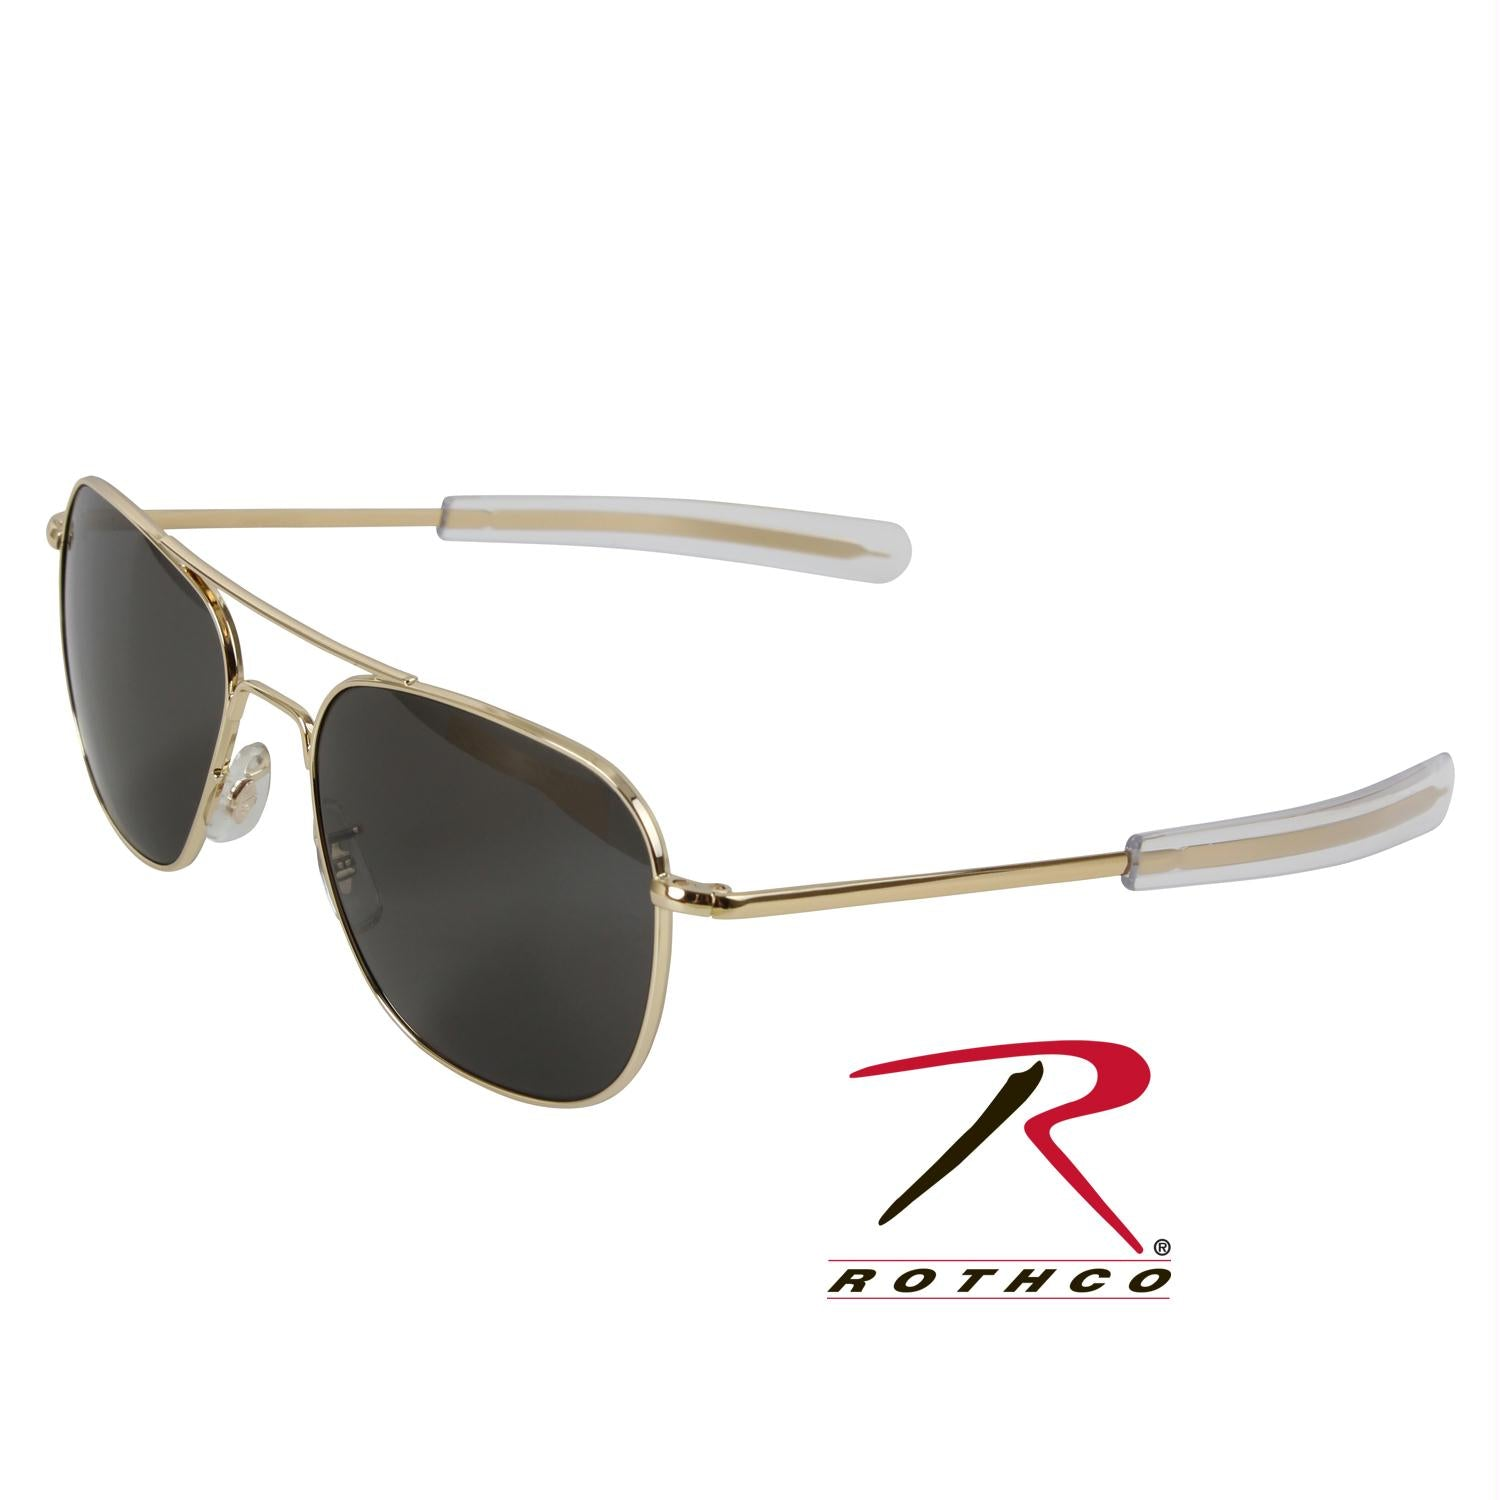 American Optical Original Pilots Sunglasses - Gold   Grey Lens   52 MM c403f6daa3